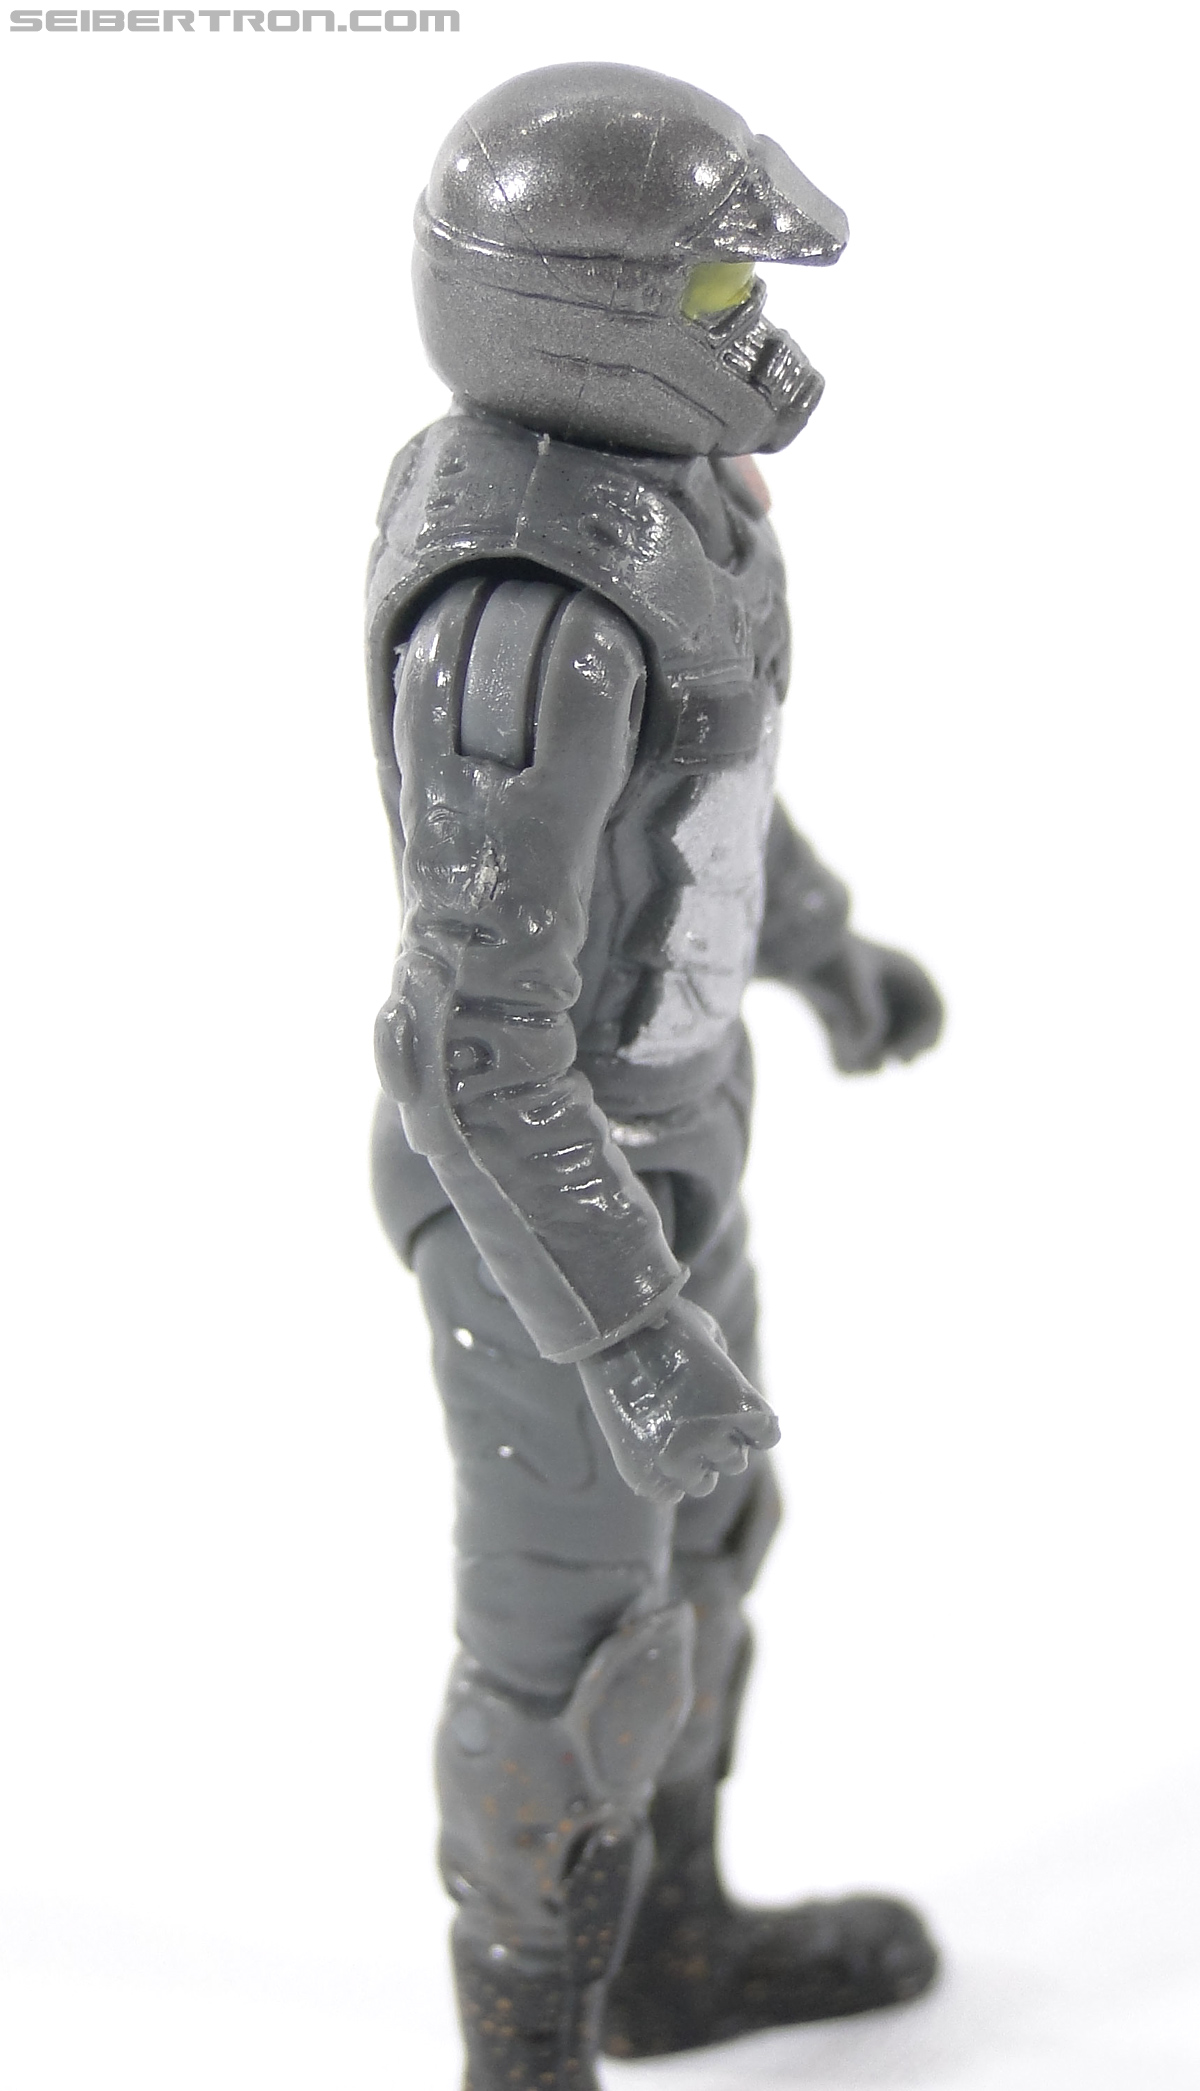 Transformers Dark of the Moon Spike Witwicky (Image #8 of 70)